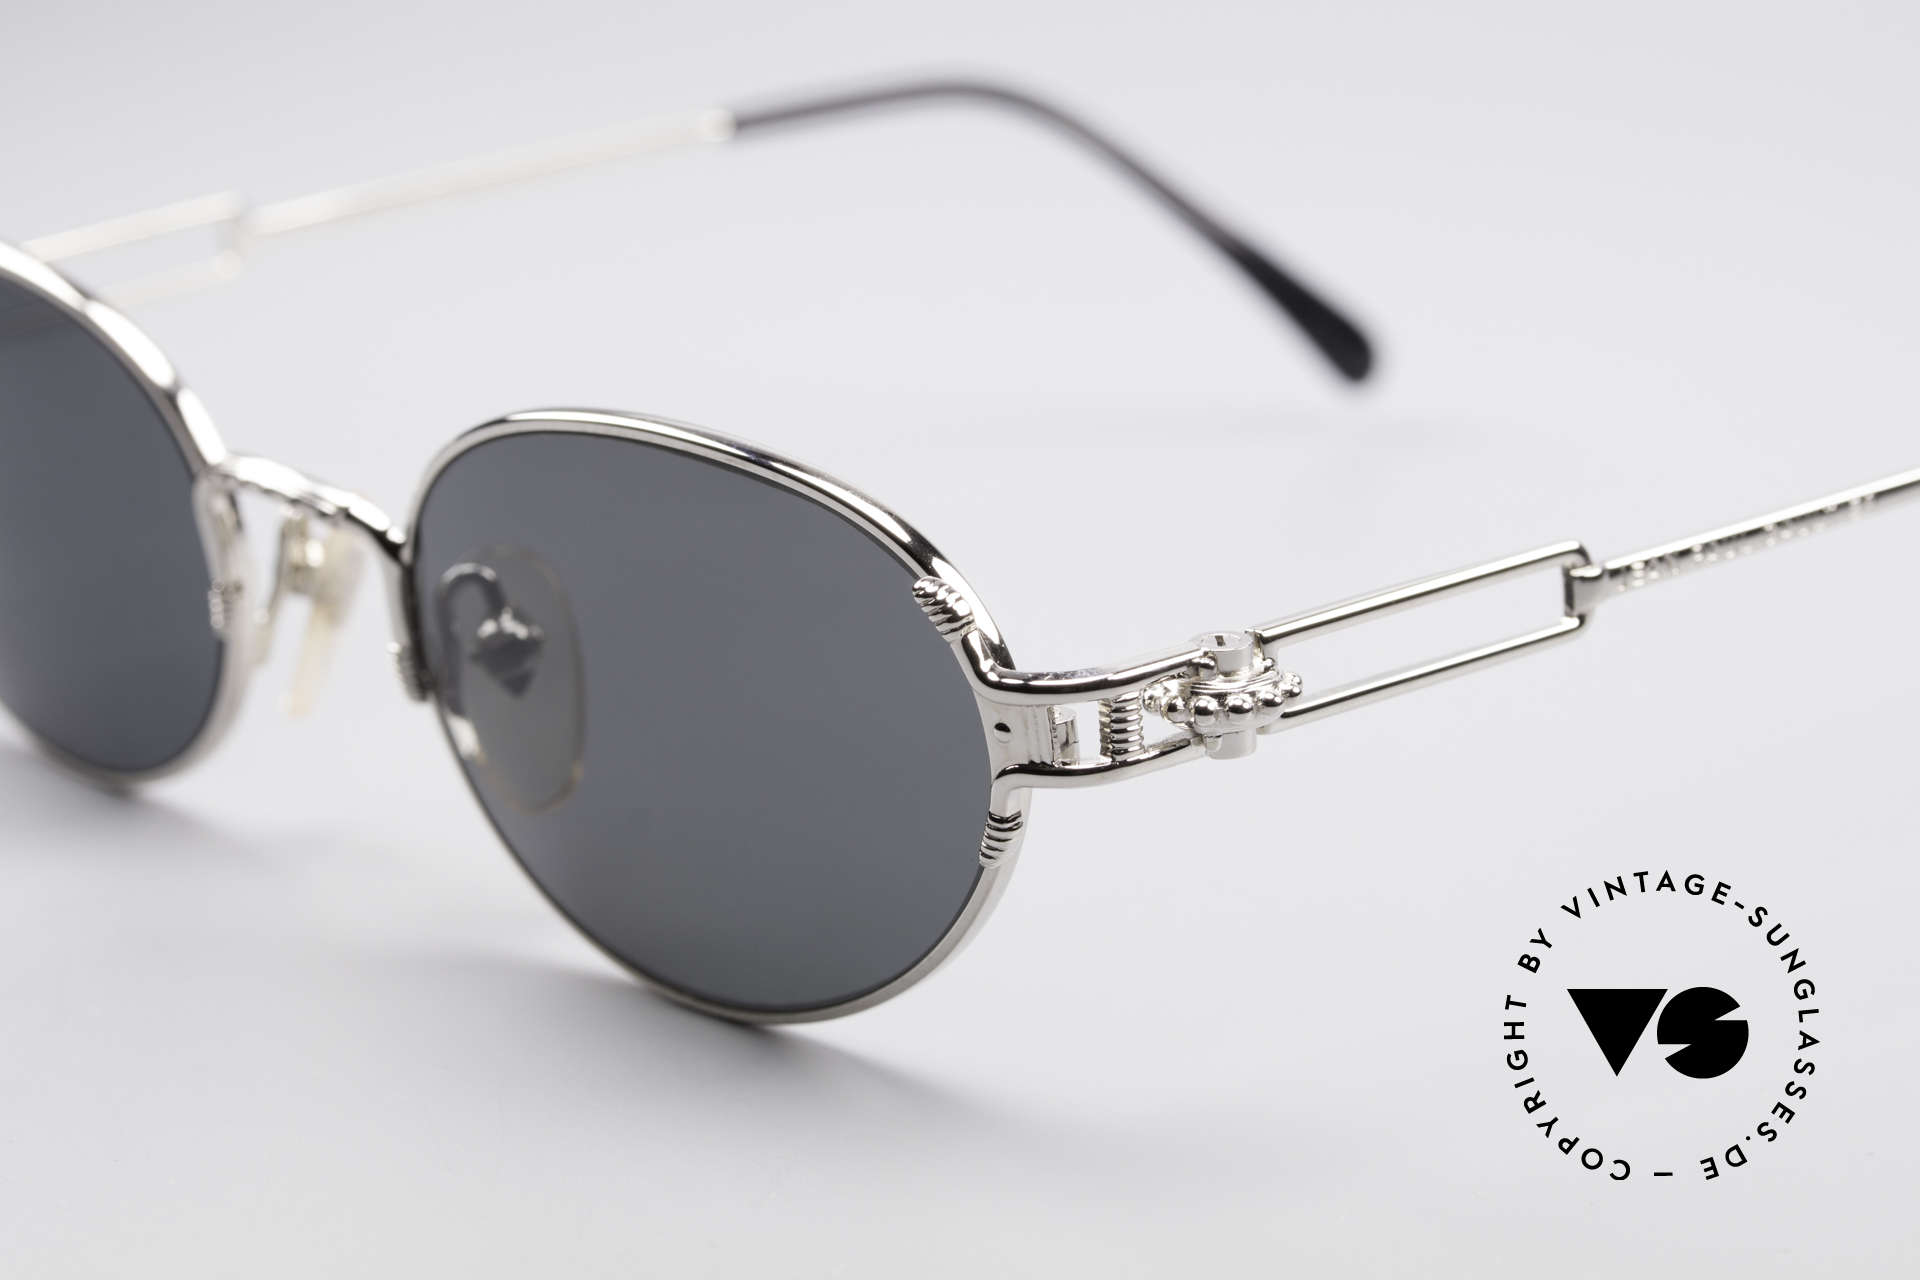 Jean Paul Gaultier 55-5108 Polarized Oval Sunglasses, NO RETRO shades, but a vintage 90's ORIGINAL, Made for Men and Women